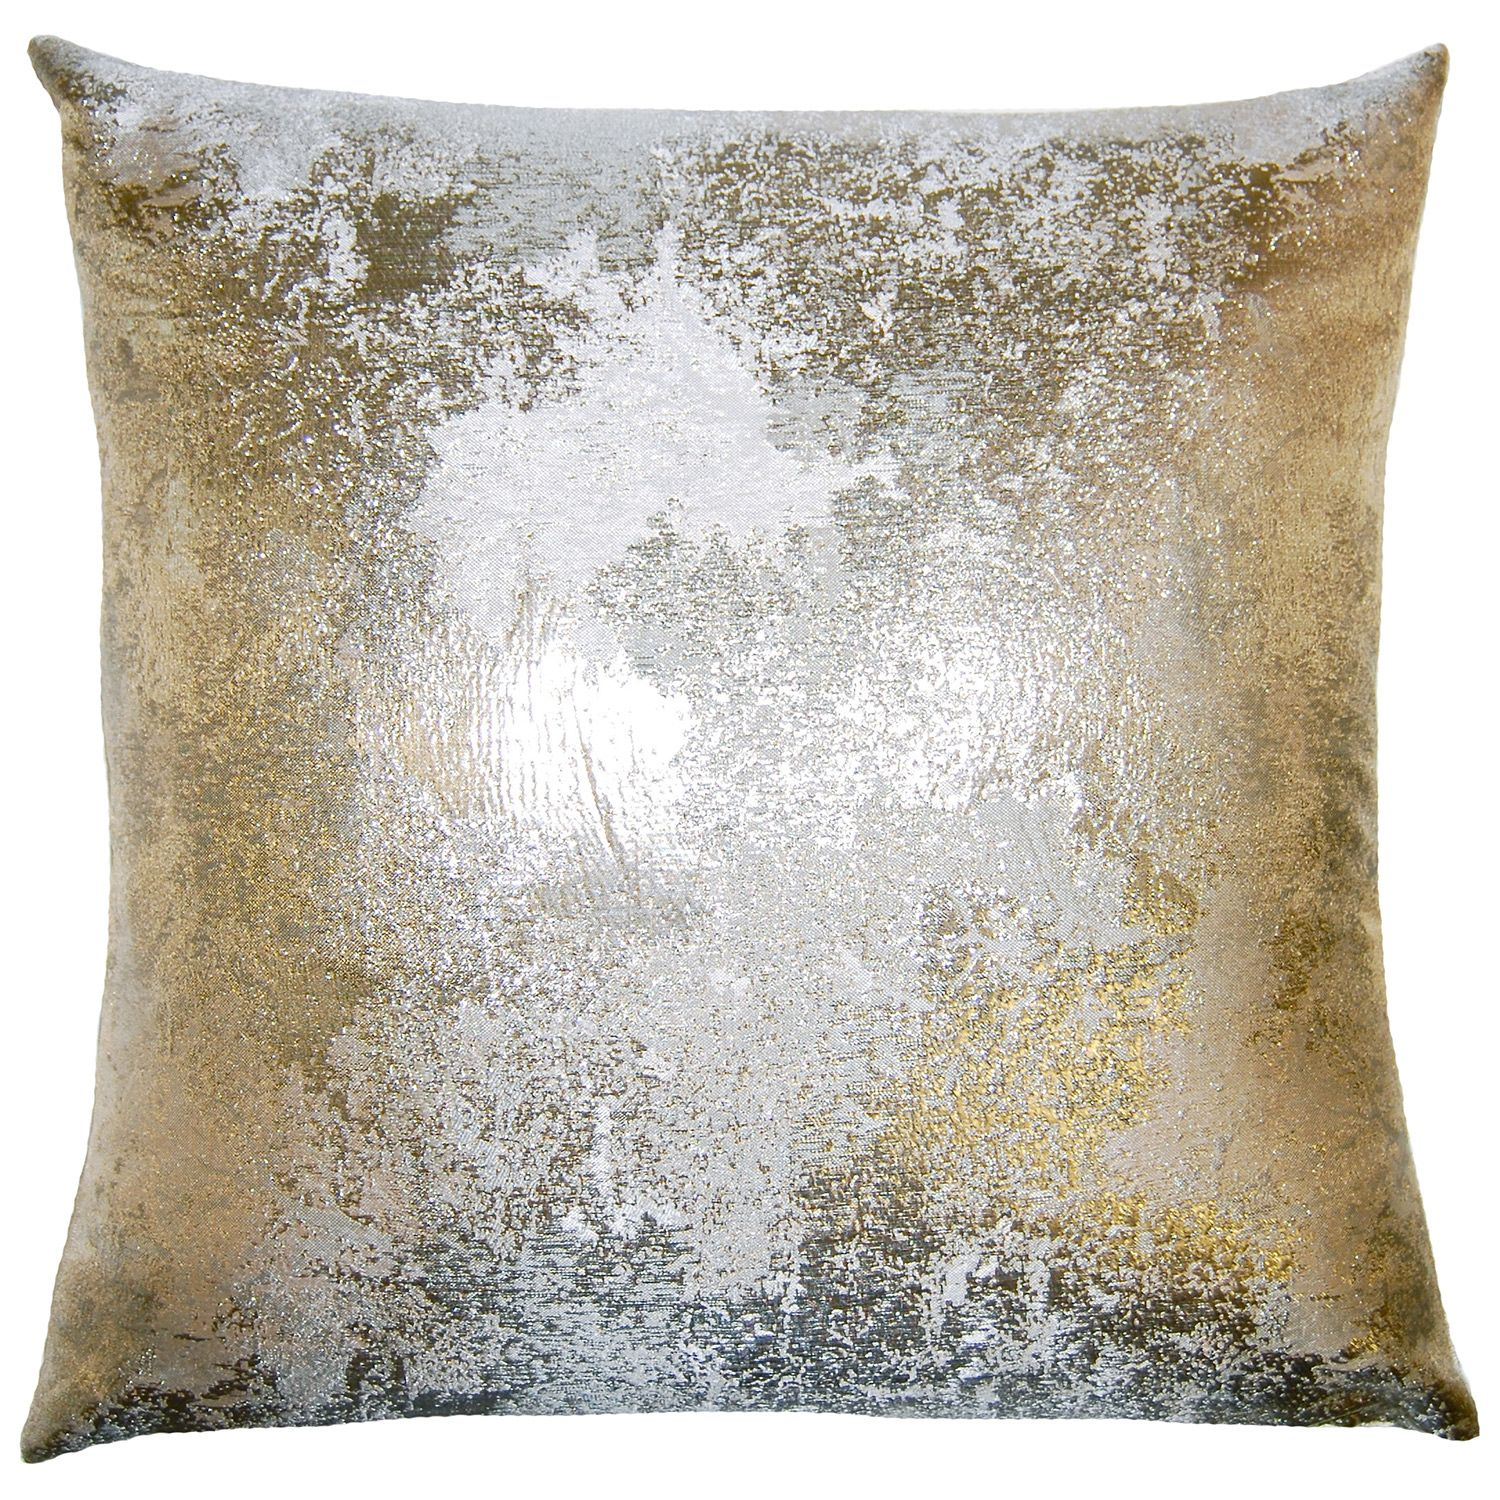 brillante antiqued throw pillow silk and polyester metallic gold  - antiqued metallic pillow  contemporary  pillows  by square feathers